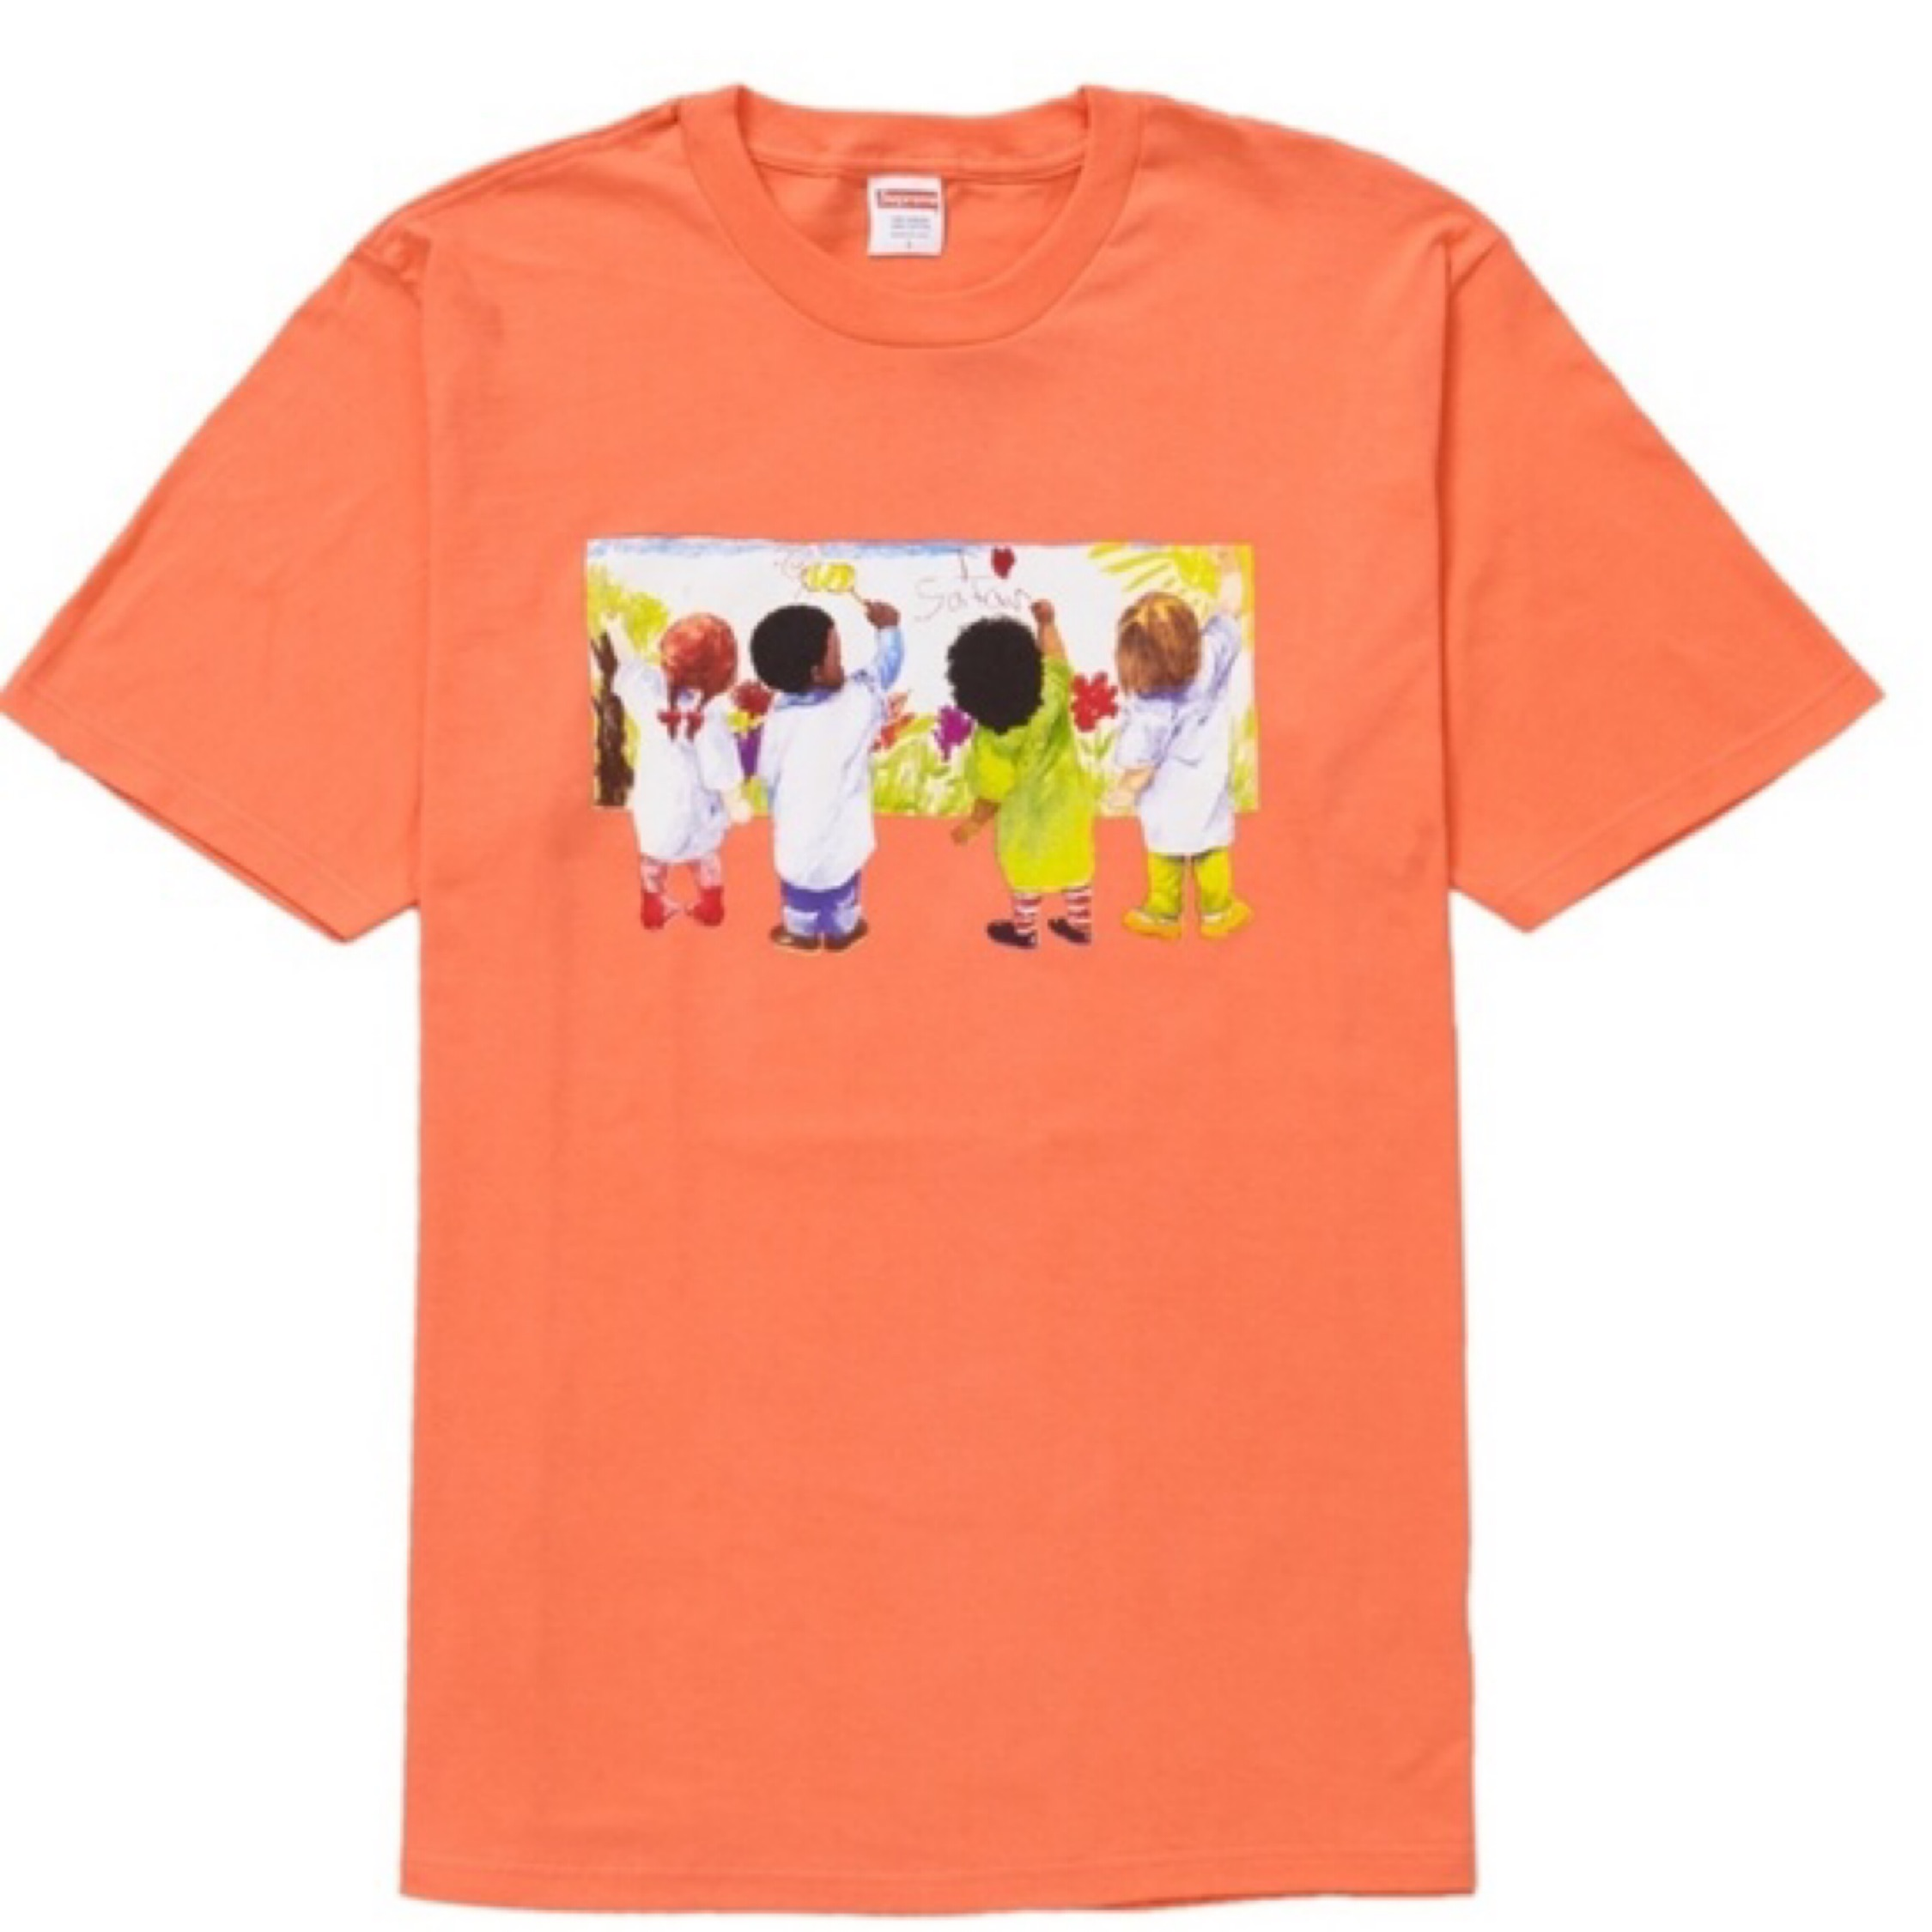 Ds 19 Supreme Kids Tee Neon Orange M Bape